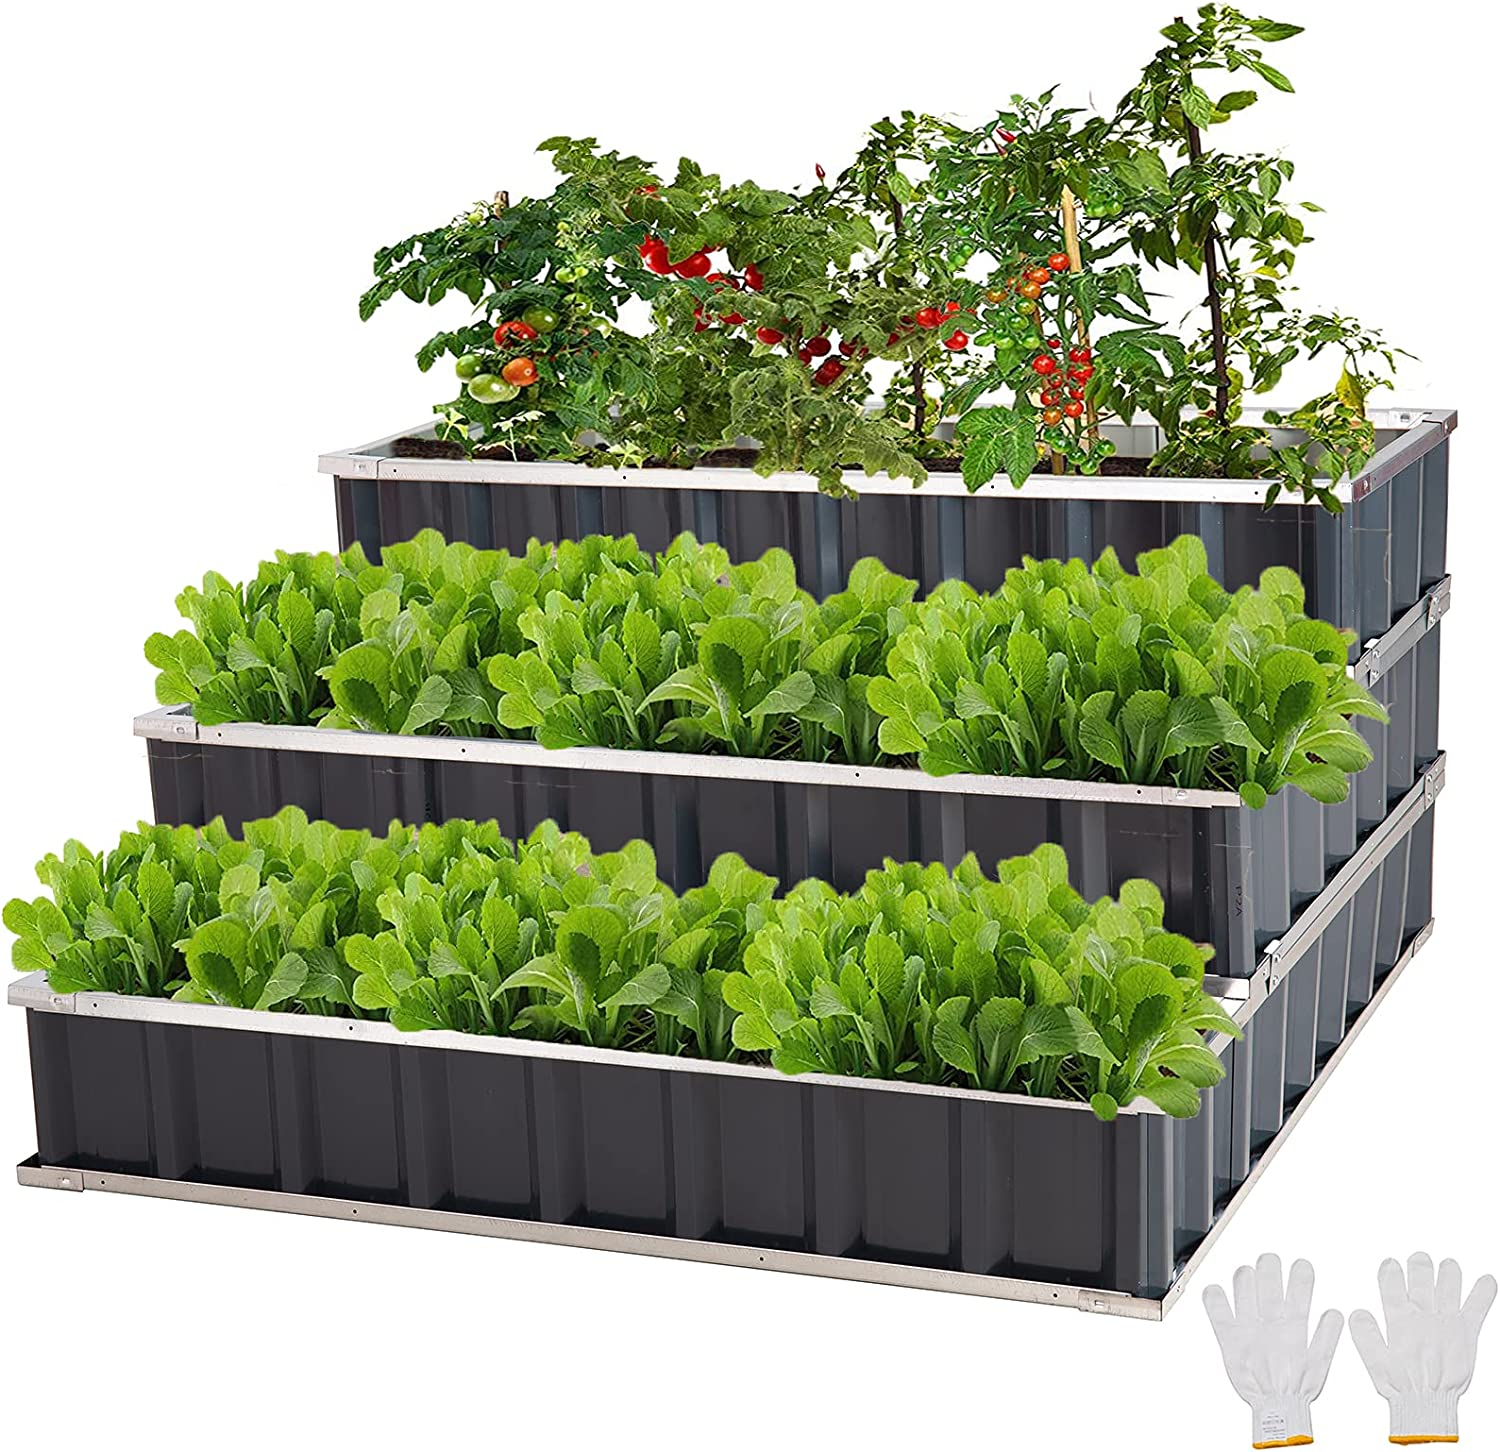 FORTUNO 3 Tier Raised Garden Bed Metal Elevated Planting Box Kit 46.5x46.5x23.6 Inch Outdoor Patio Steel Planter for Vegetables, Flowers, Herbs, Black